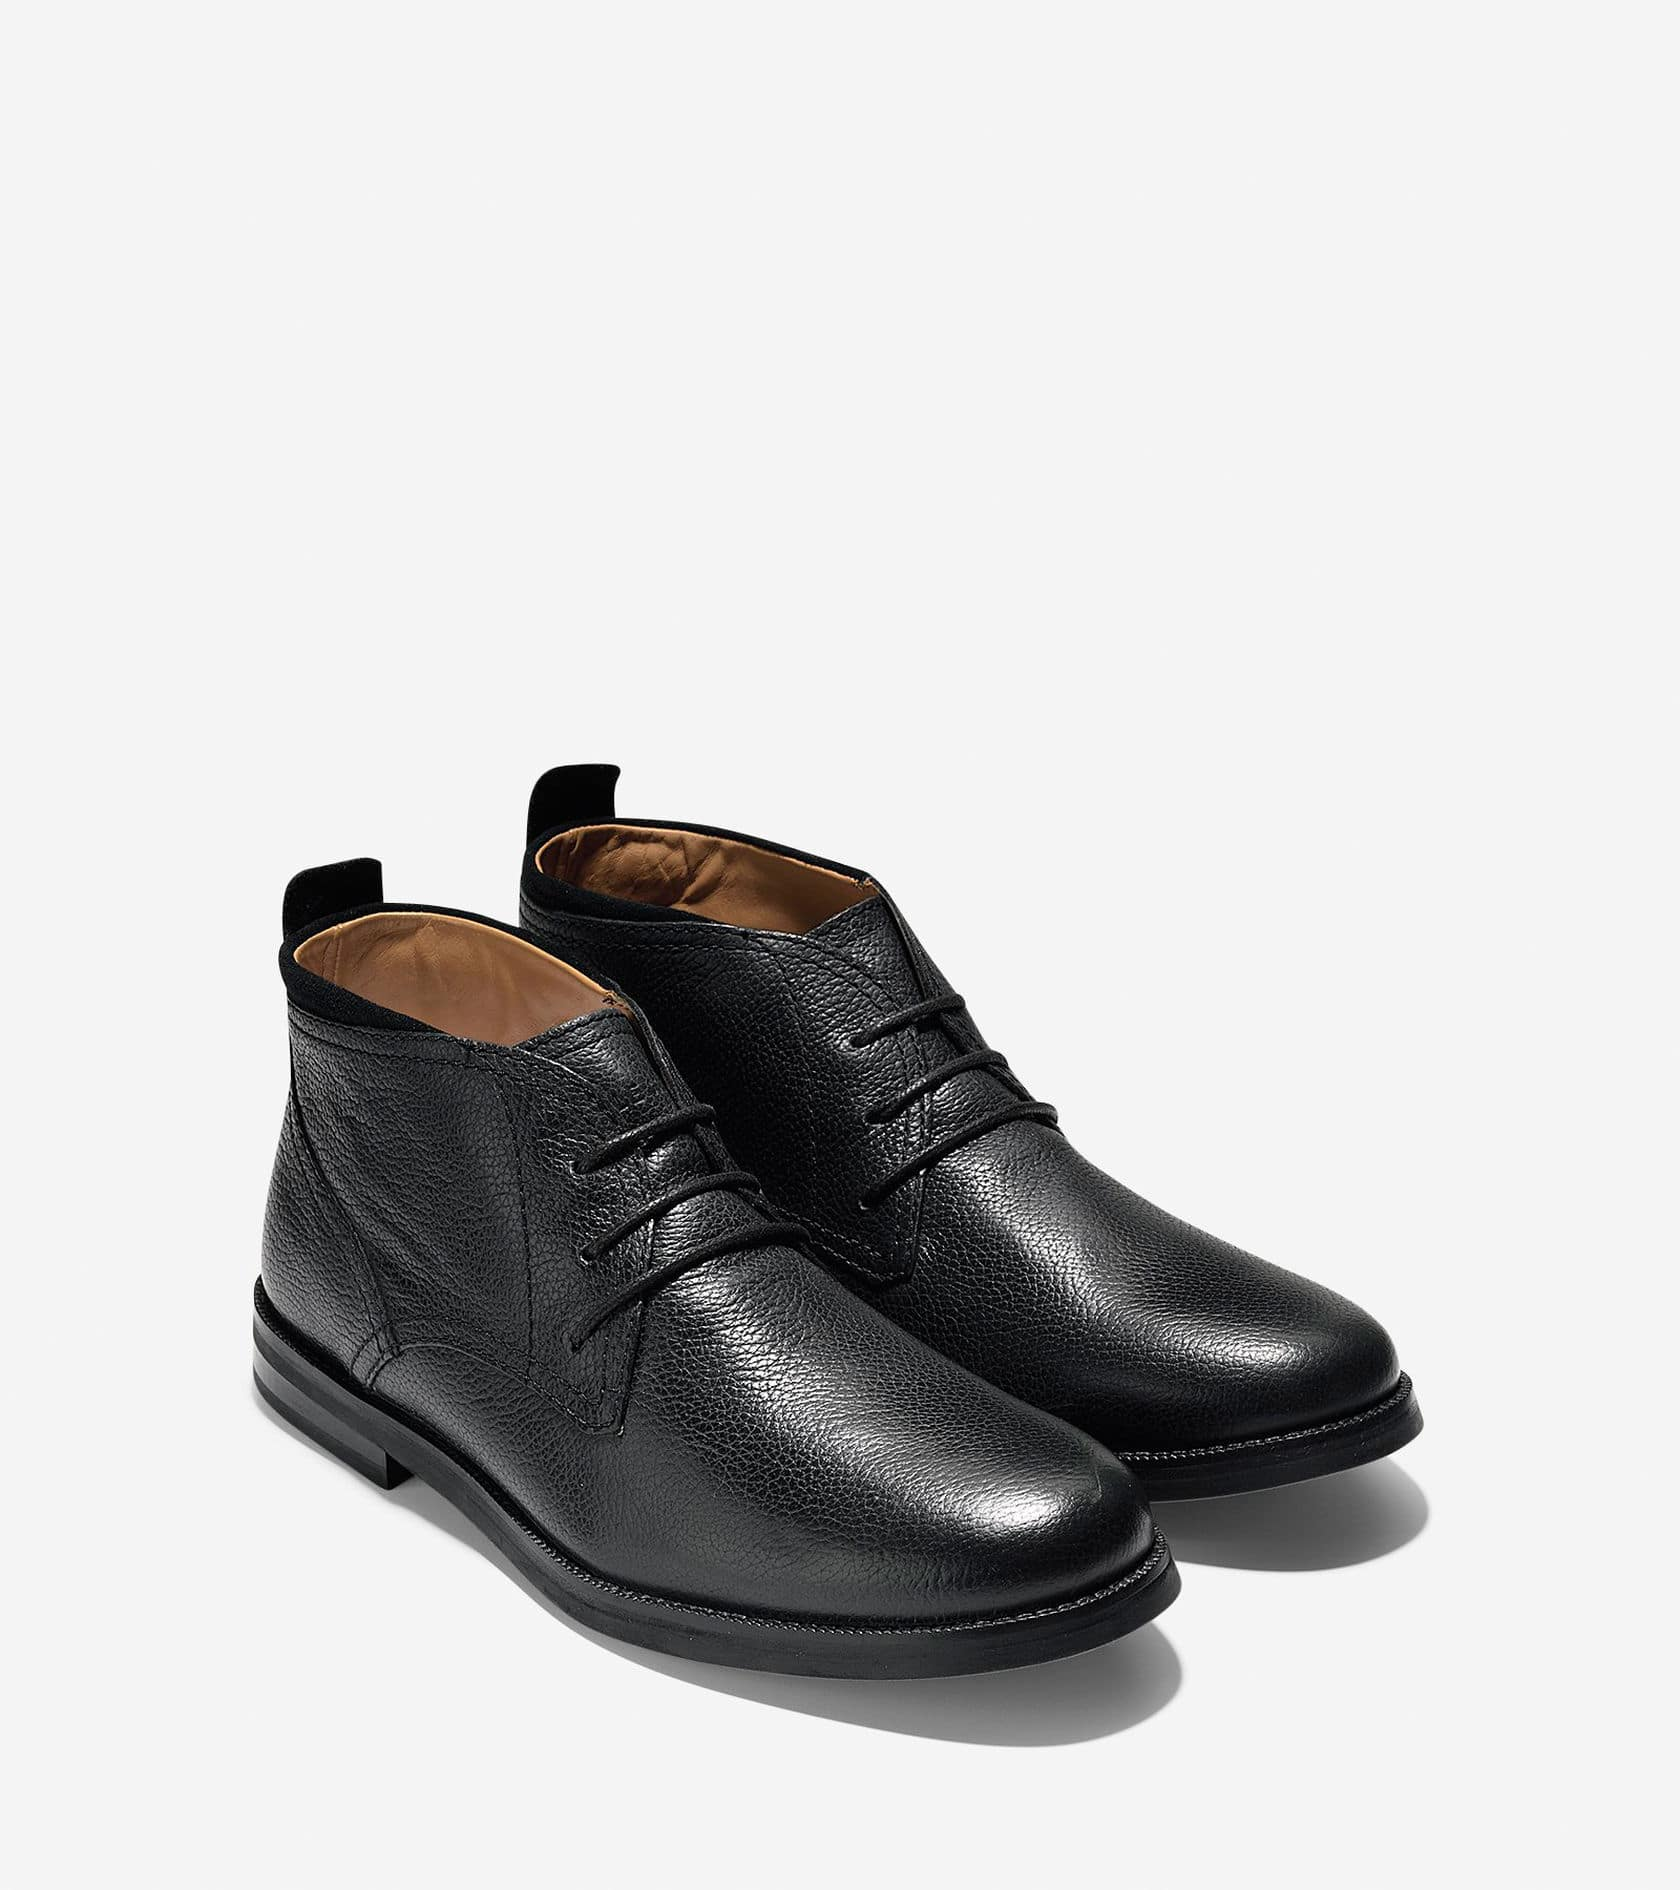 5b5583576 Cole Haan: Extra 40% Off Sale Styles Plus Free Shipping with Shoprunner -  Men's Ogden Stitch Chukka Boots - $83.97